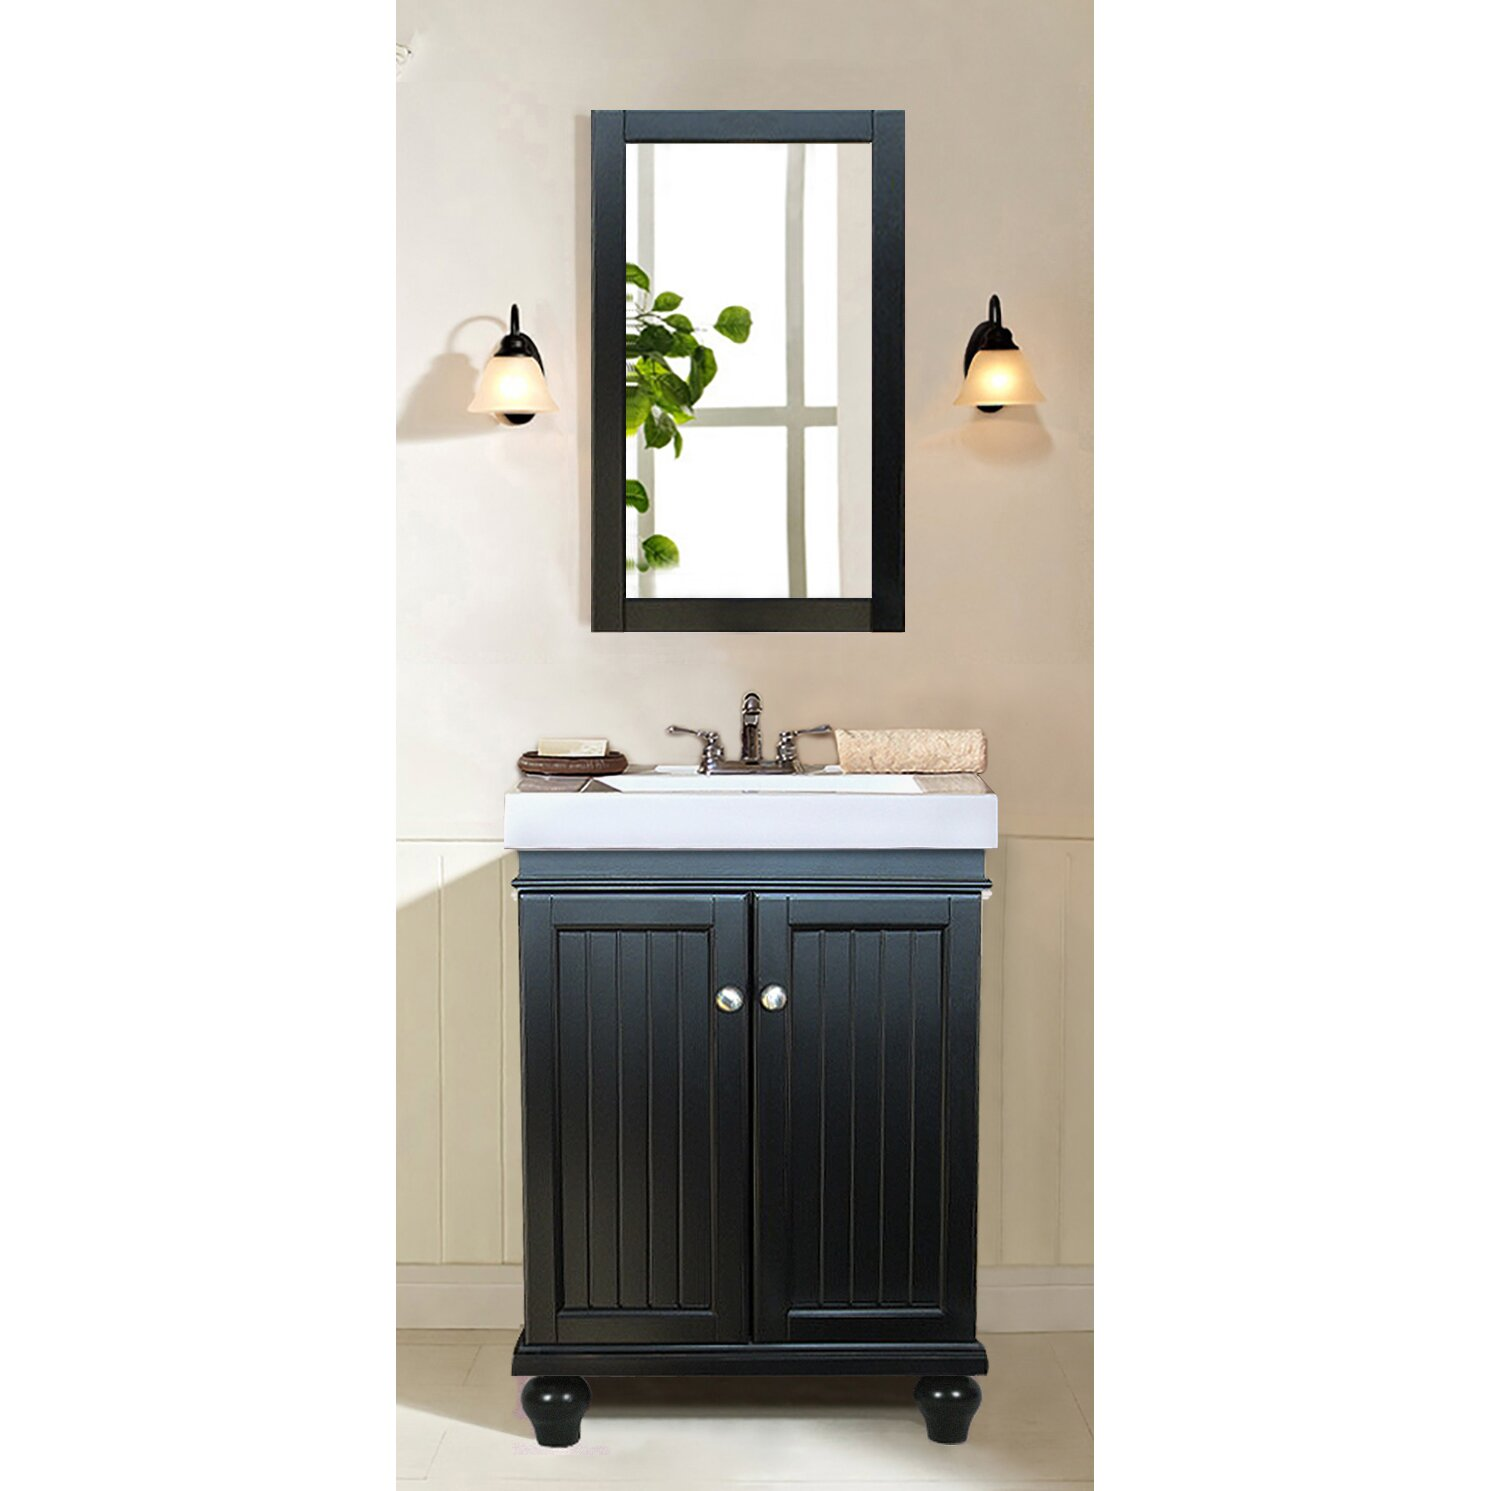 legion furniture 24 single bathroom vanity set reviews wayfair. Black Bedroom Furniture Sets. Home Design Ideas